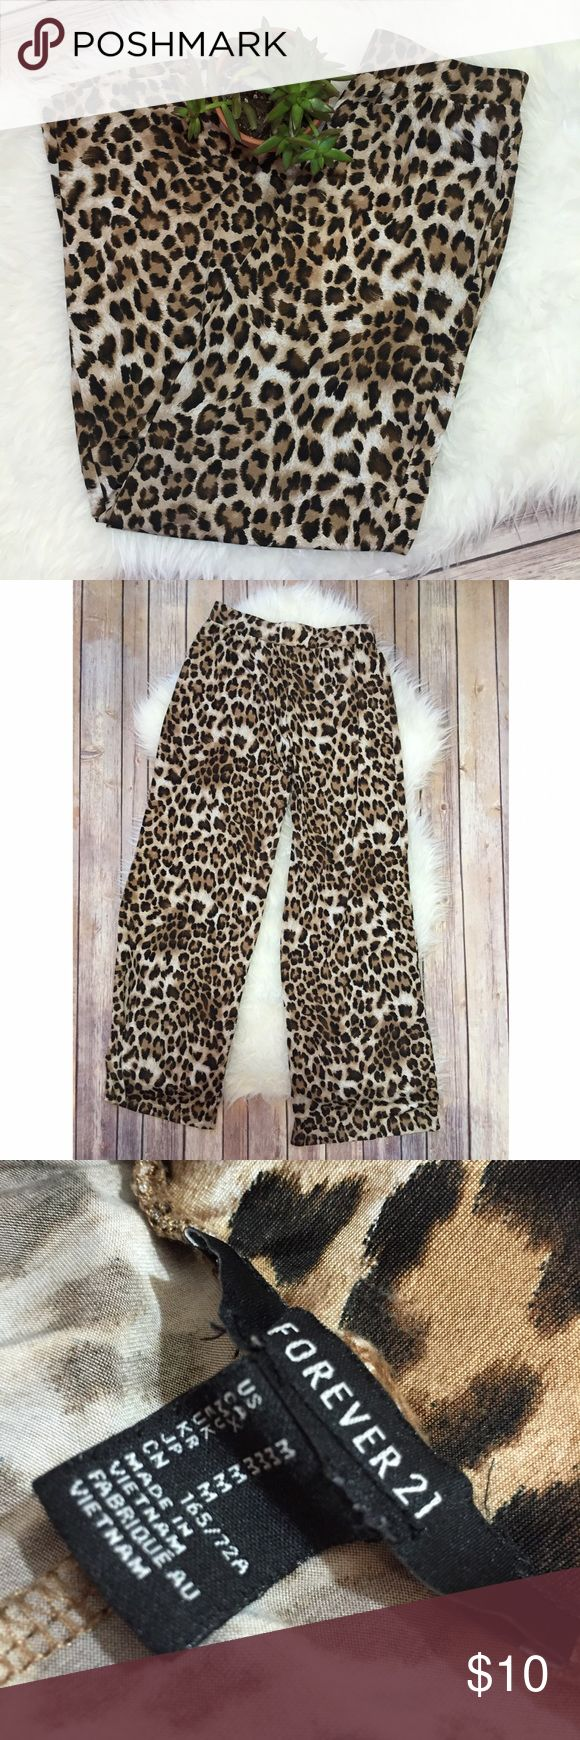 Leopard Silky Lounge Pants #24 Size M from Forever21! I wear them with white blouses and pointy toed flats!! My dad thinks they are Pj's but I bought them in the dressier section of Forever 21 :) so really they can be worn both ways Forever 21 Pants Straight Leg